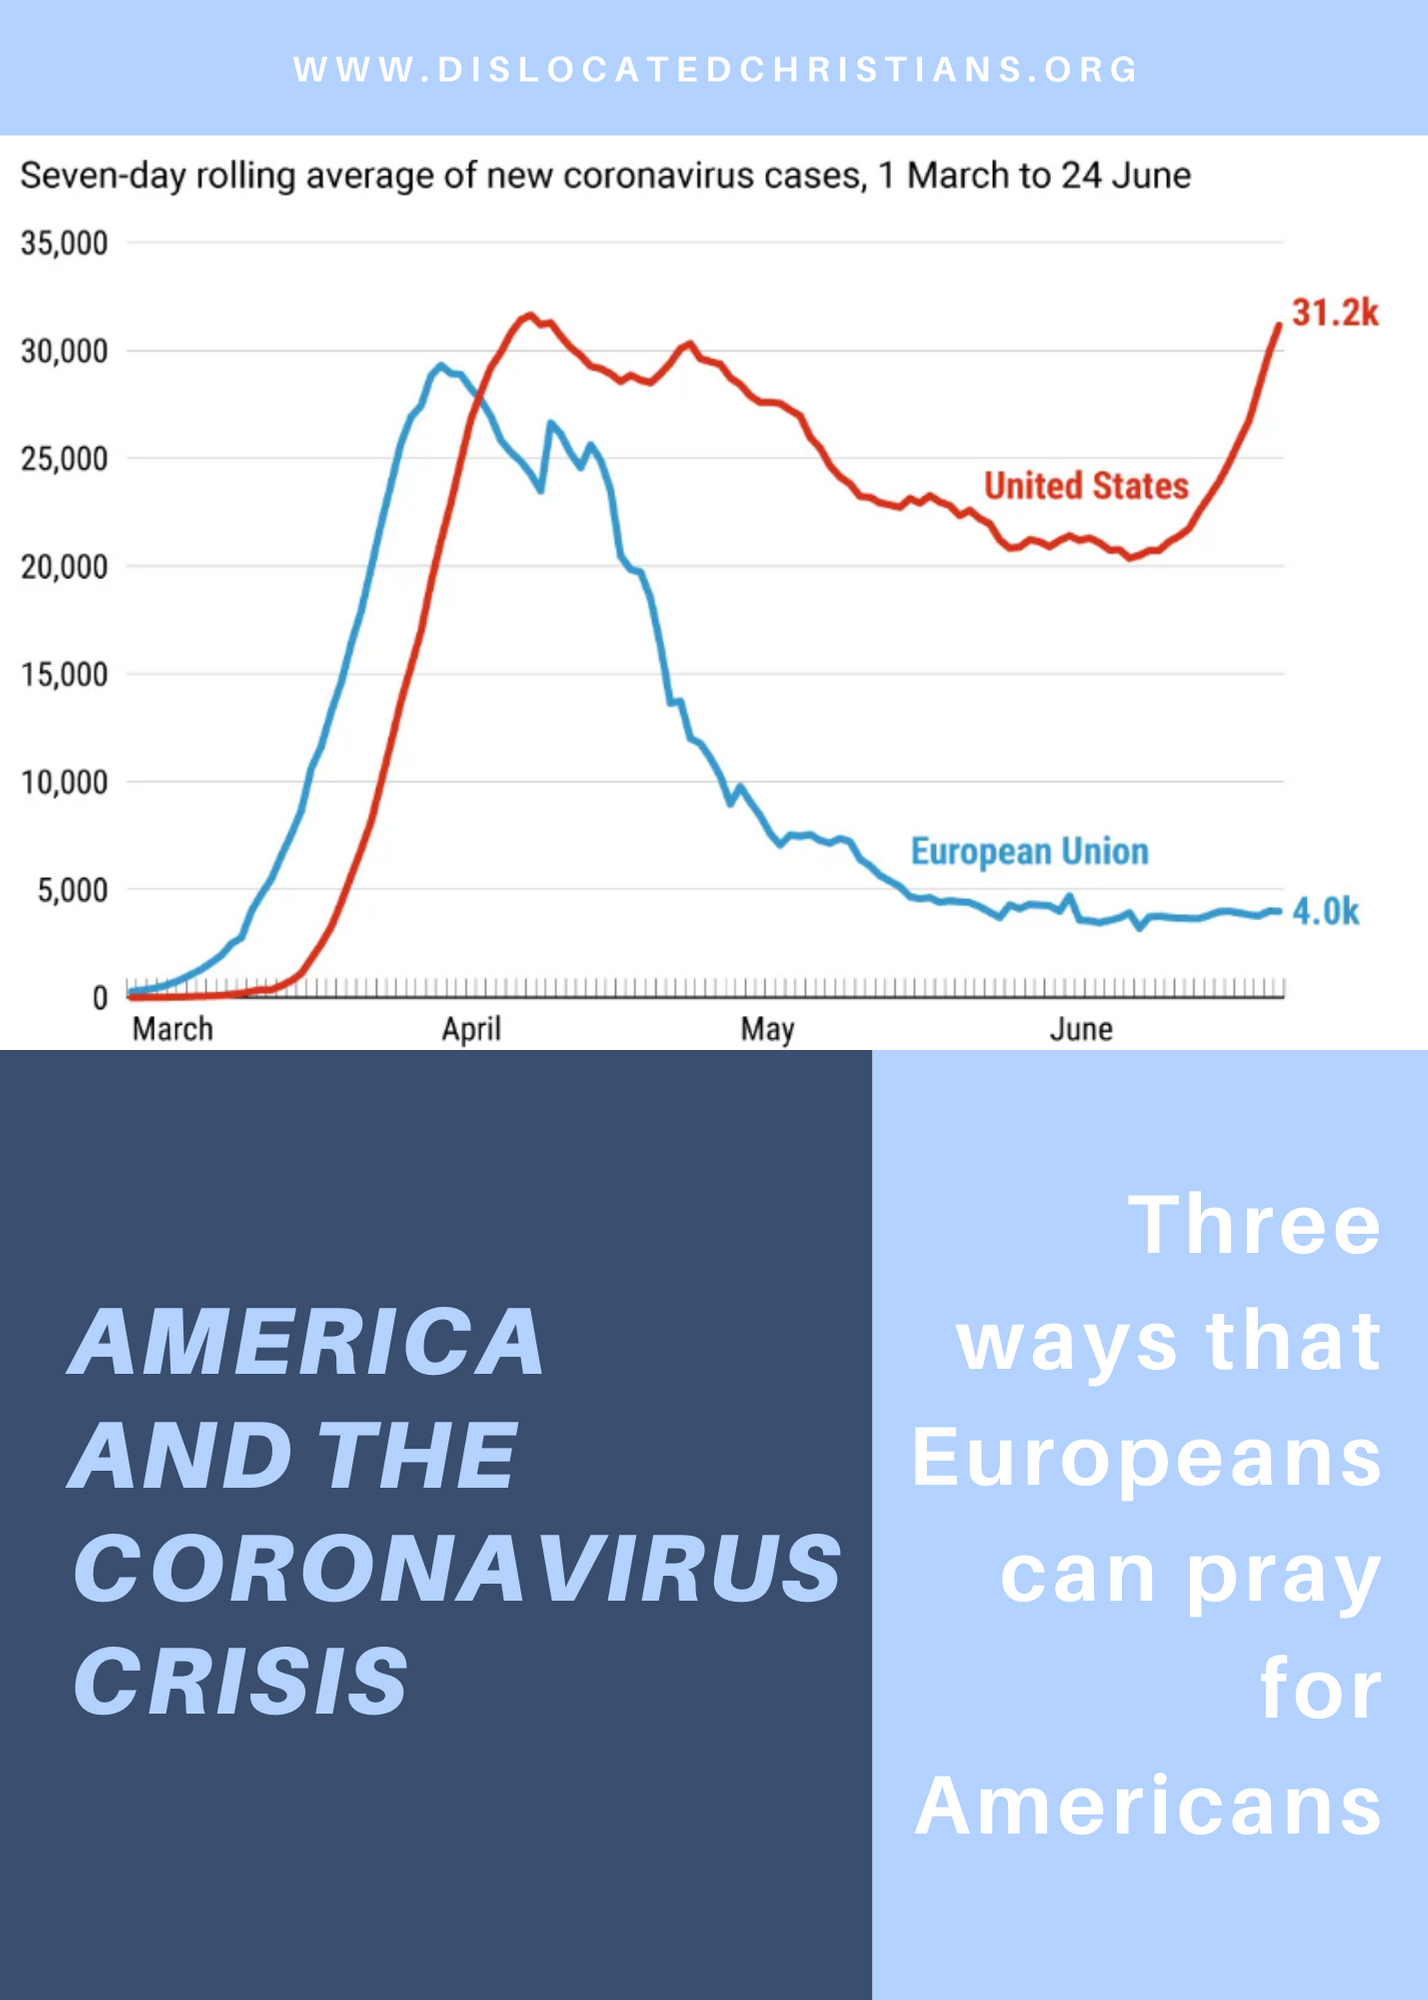 A graph showing the number of coronavirus cases in the EU dropping, while case numbers soar in the US